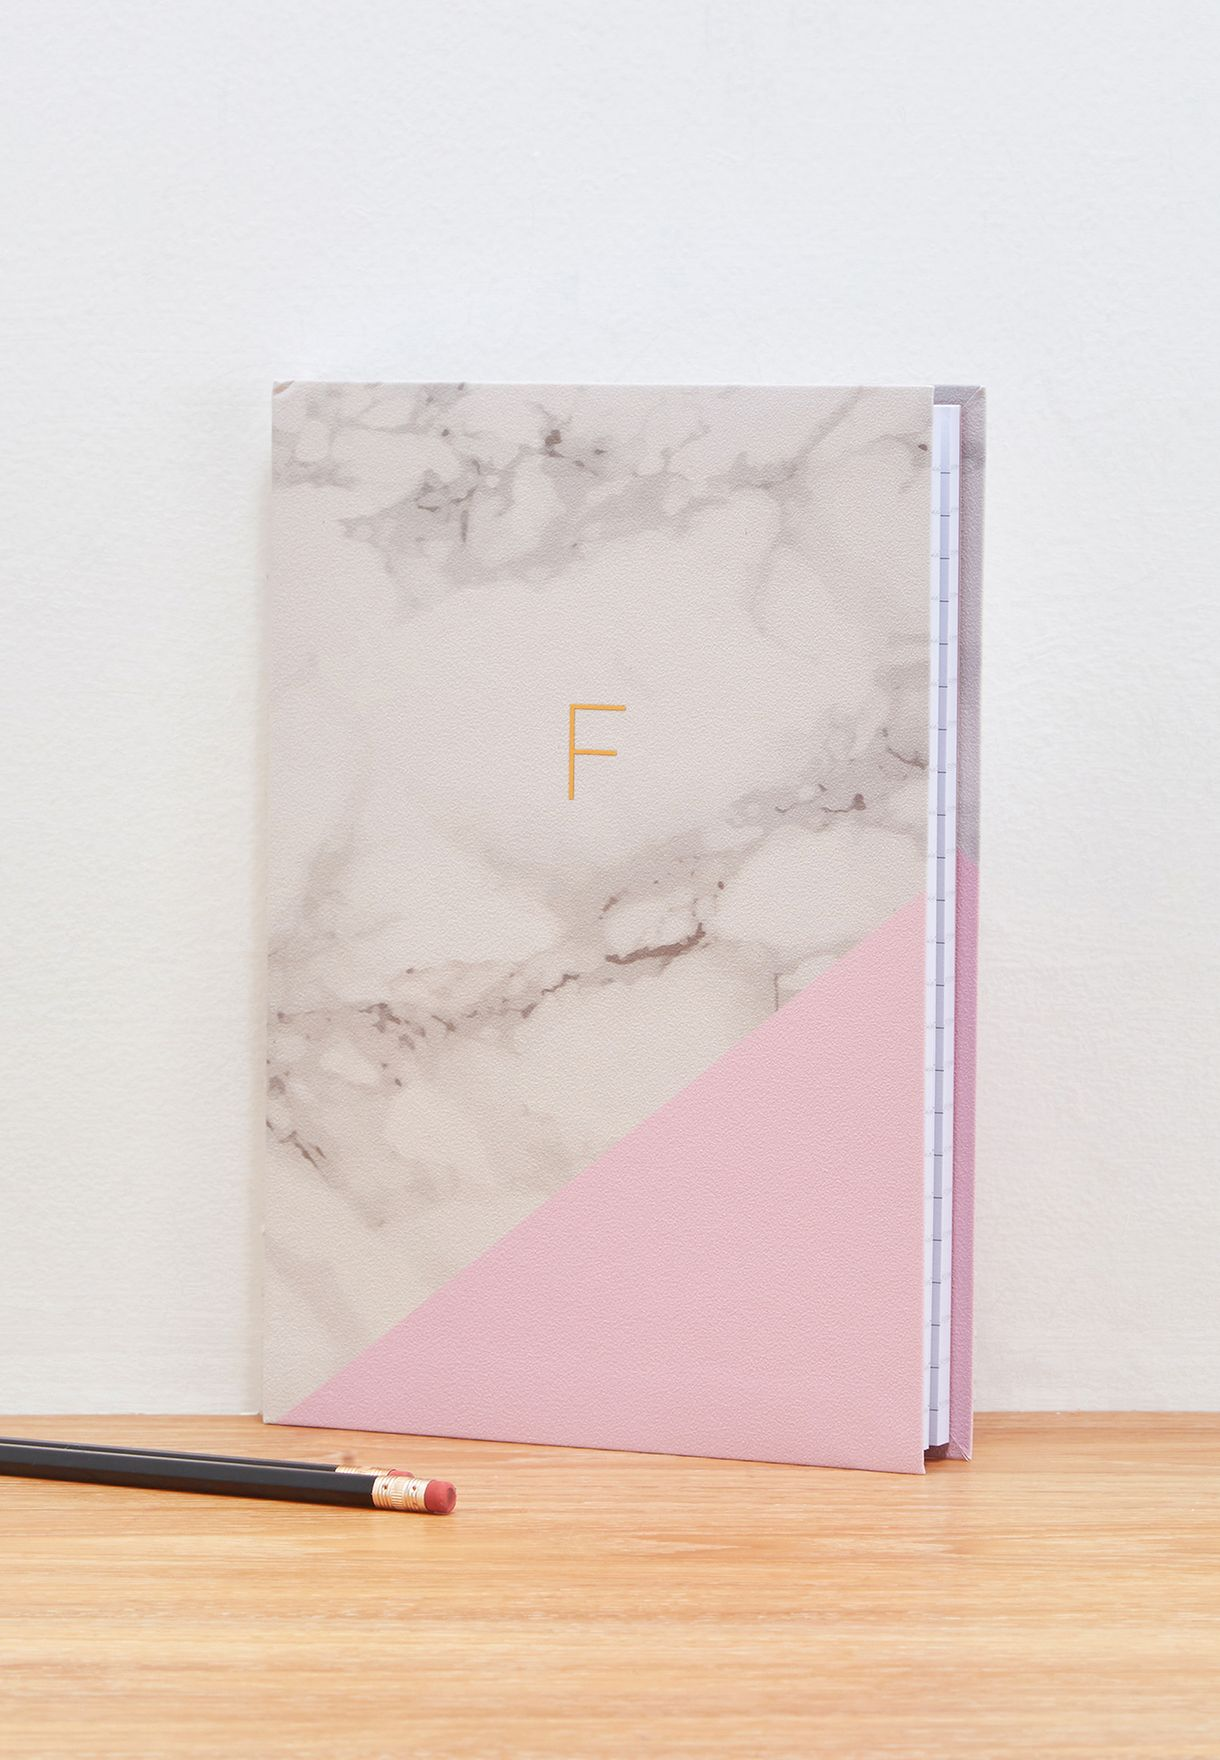 Premium Monogram Notebook F - B5 17.5x25cm